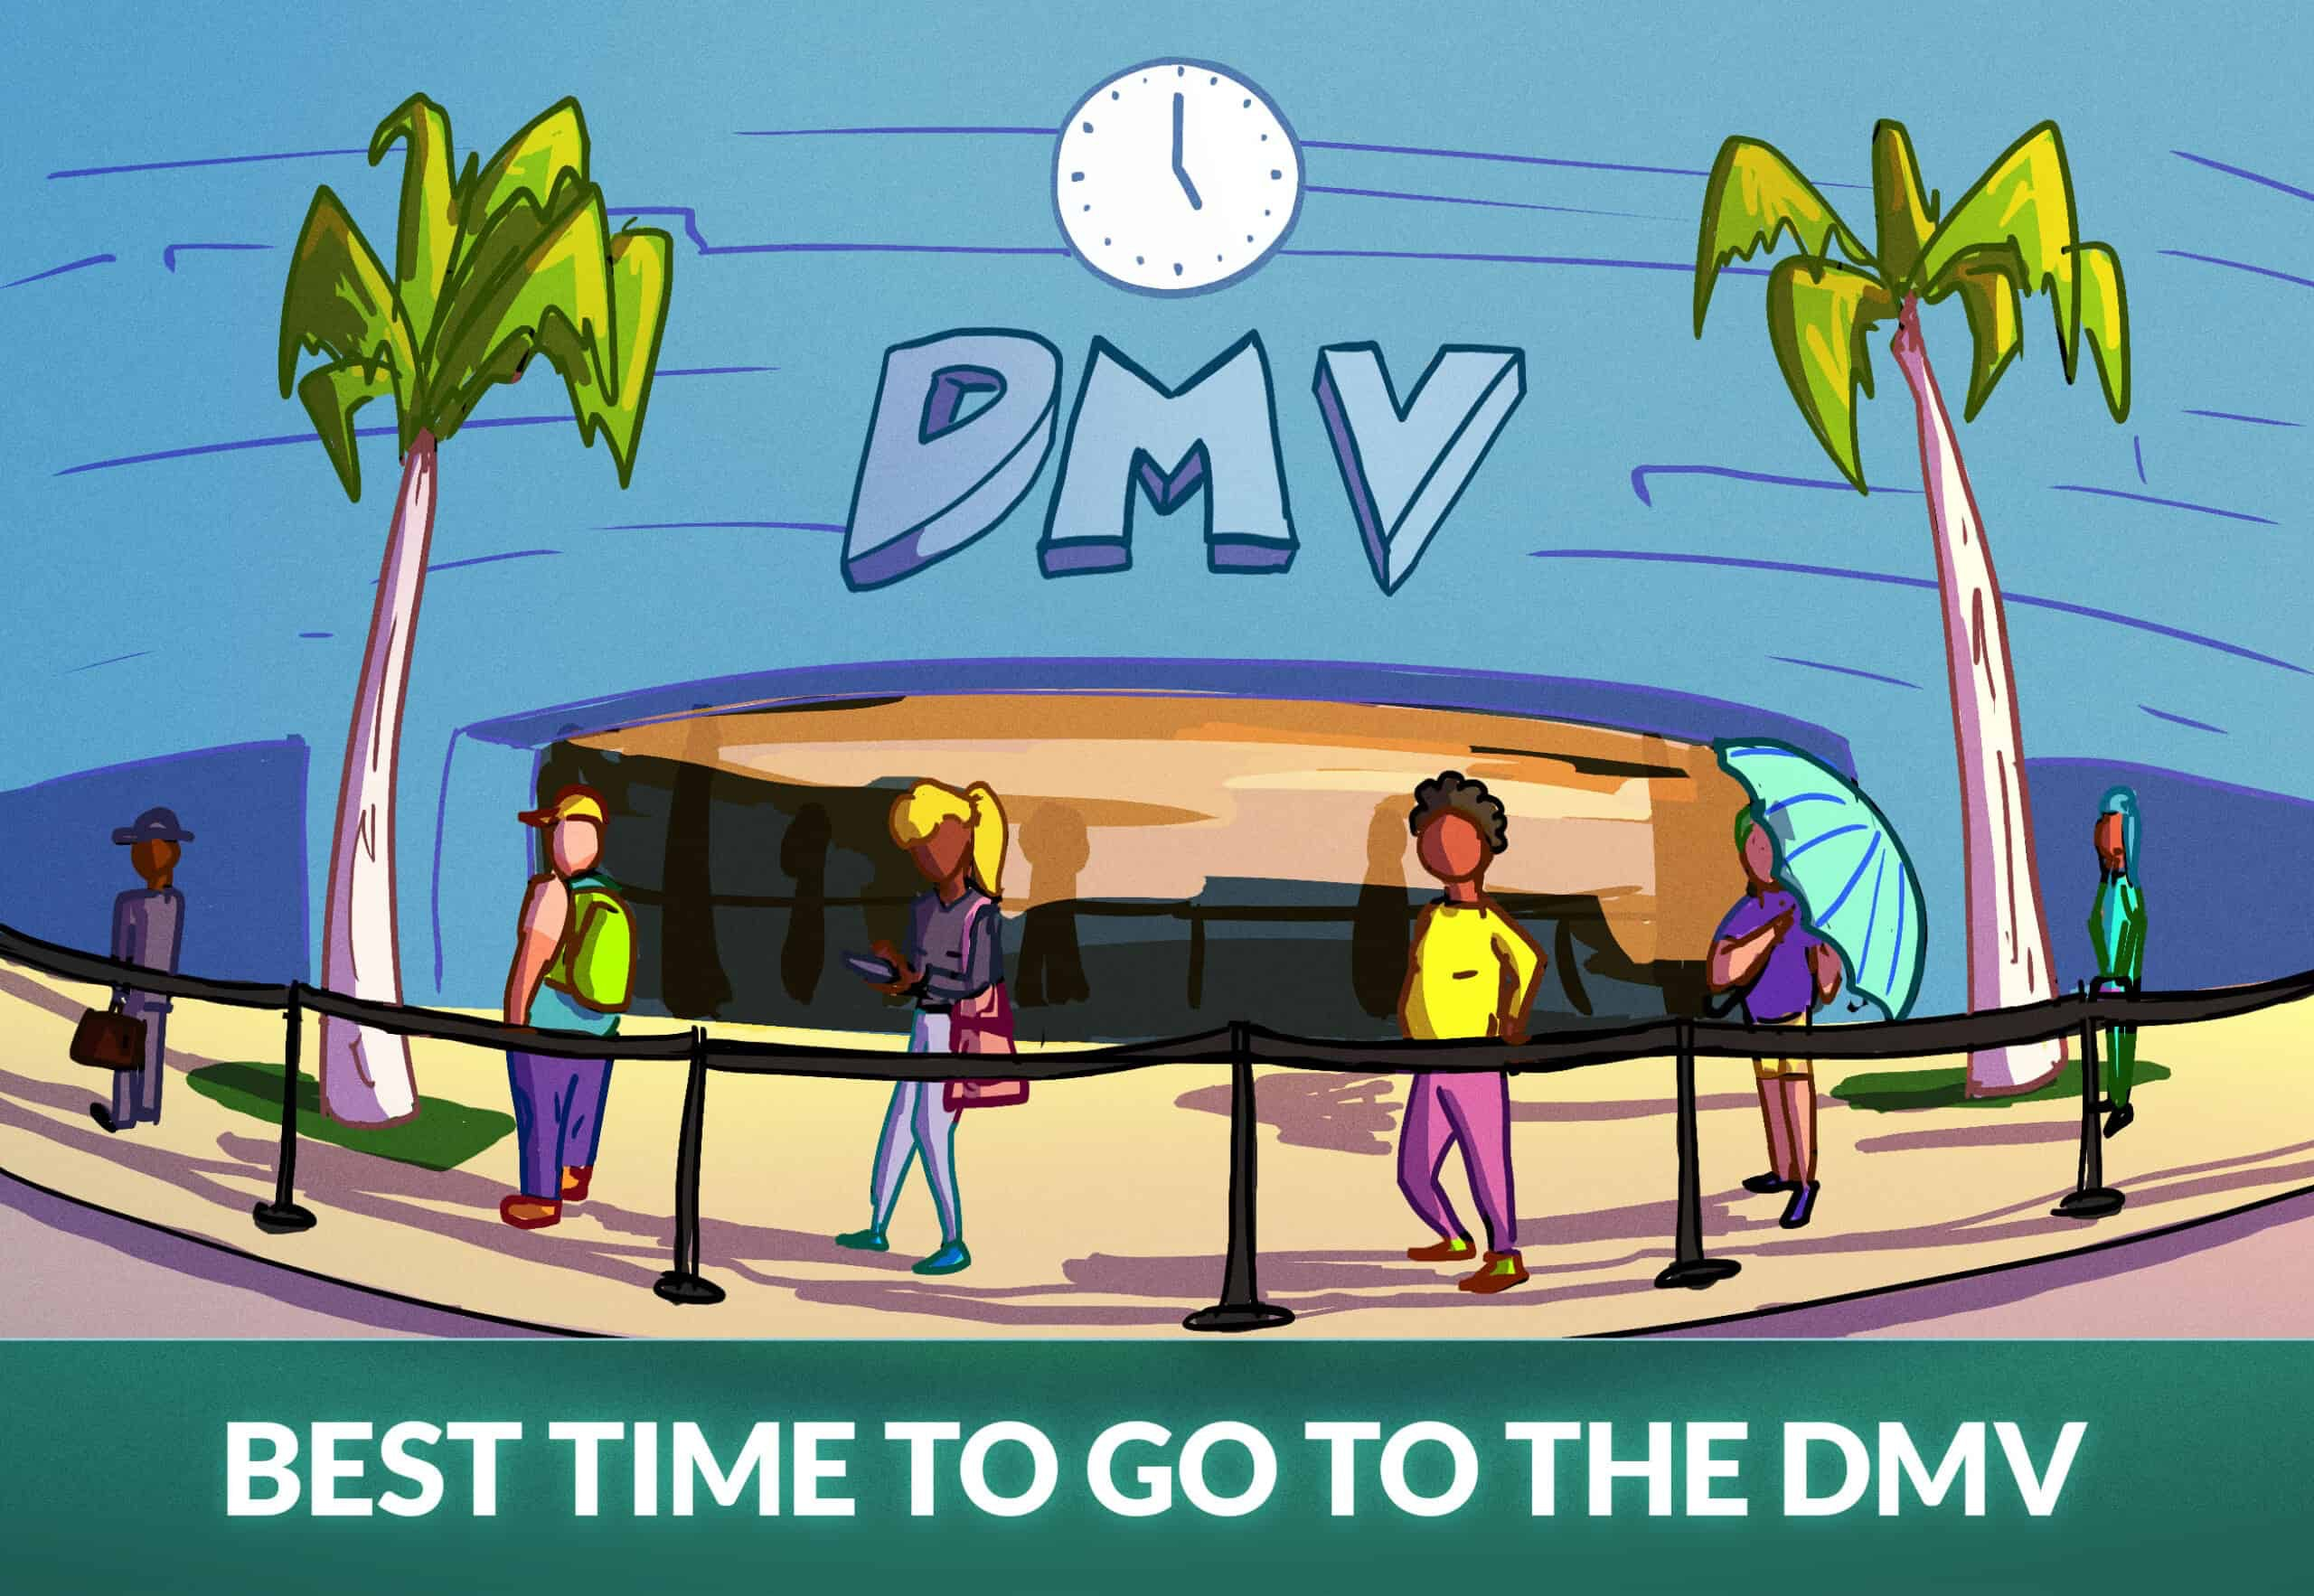 BEST TIME TO GO TO THE DMV